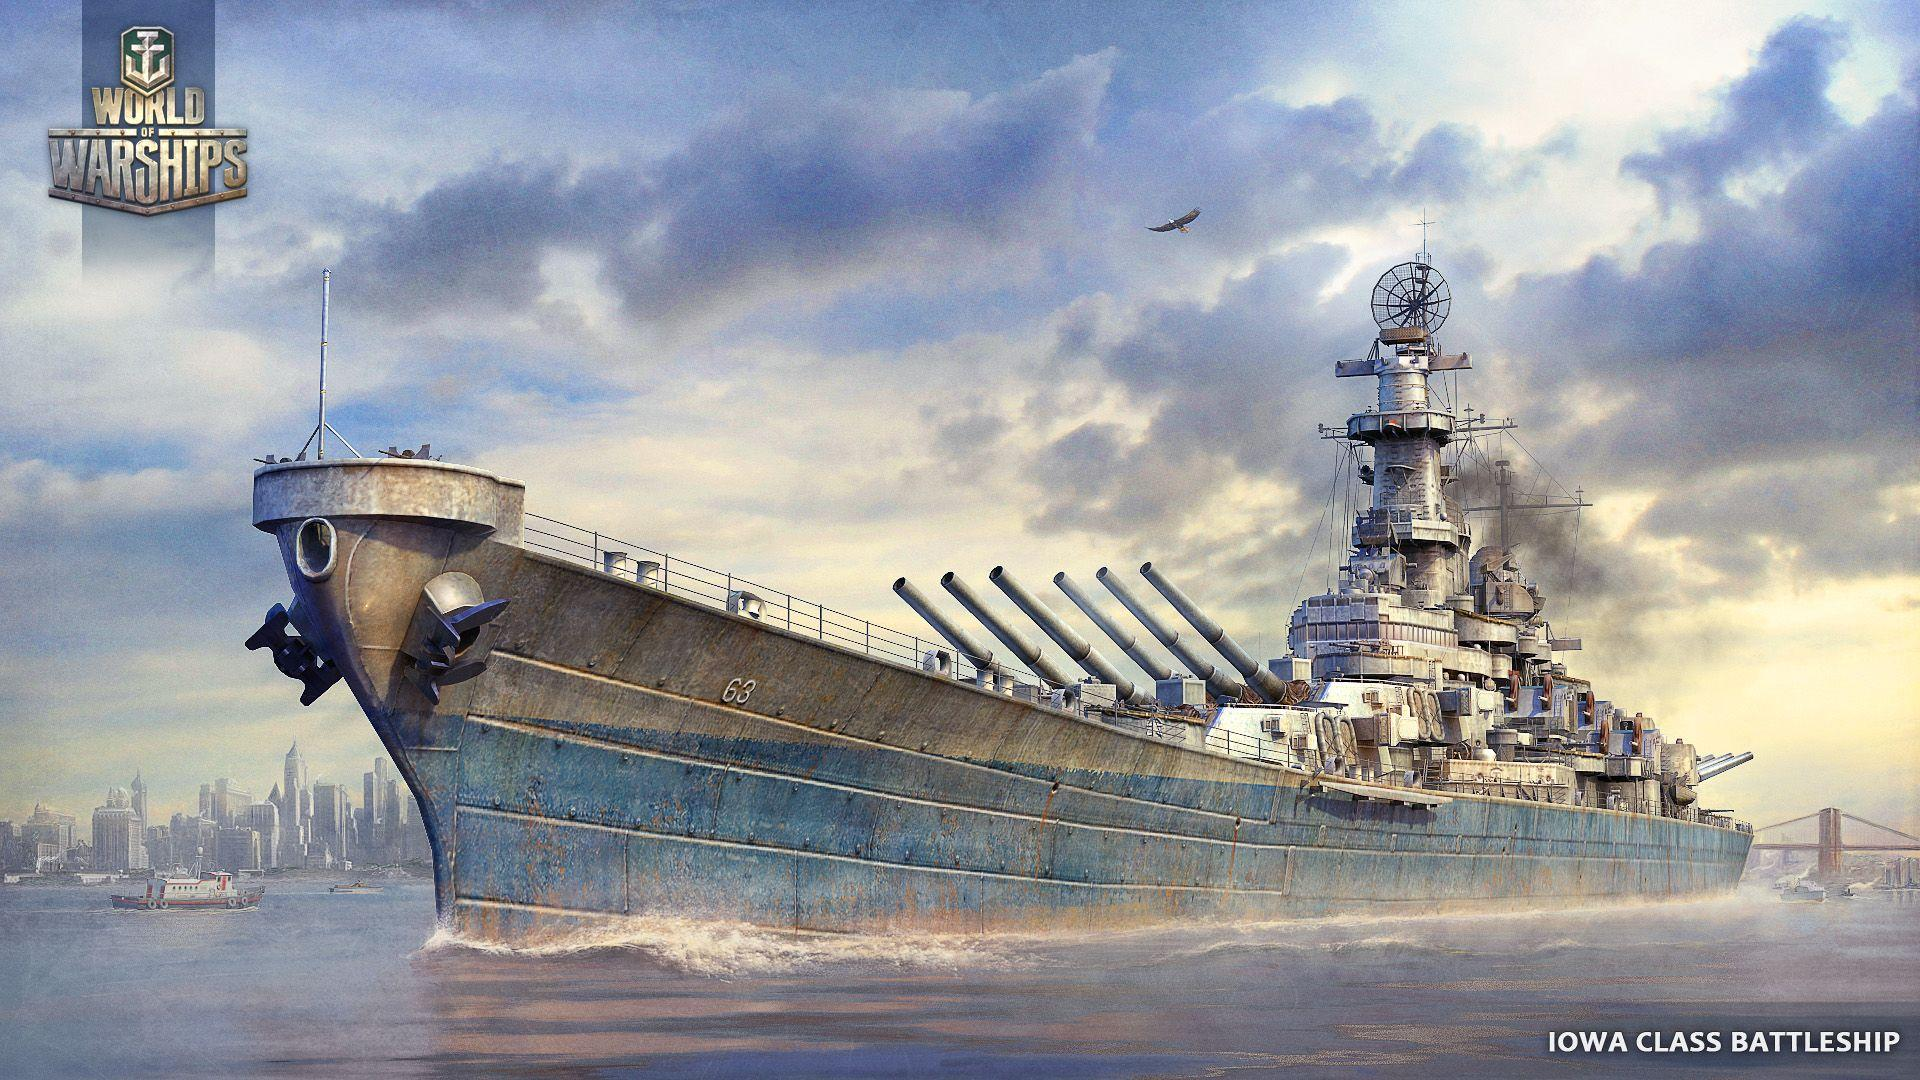 World Of Warships Wallpapers Group with 74 items